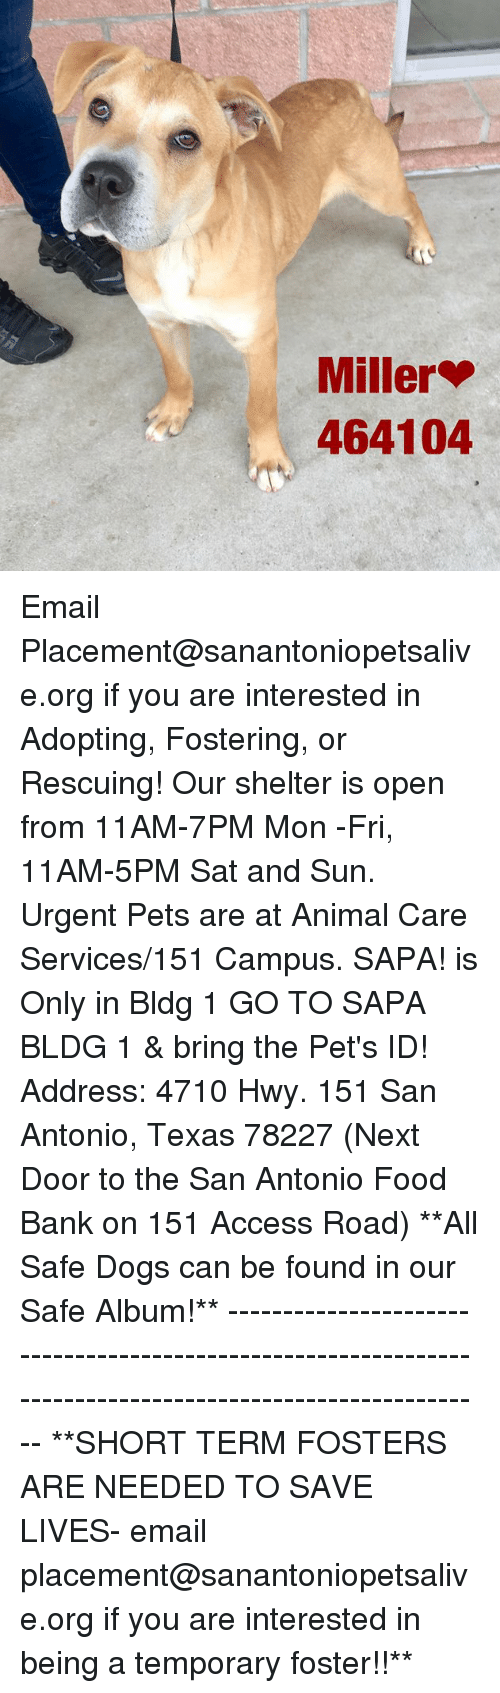 Dogs, Food, and Memes: Miller  464104 Email Placement@sanantoniopetsalive.org if you are interested in Adopting, Fostering, or Rescuing!  Our shelter is open from 11AM-7PM Mon -Fri, 11AM-5PM Sat and Sun.  Urgent Pets are at Animal Care Services/151 Campus. SAPA! is Only in Bldg 1 GO TO SAPA BLDG 1 & bring the Pet's ID! Address: 4710 Hwy. 151 San Antonio, Texas 78227 (Next Door to the San Antonio Food Bank on 151 Access Road)  **All Safe Dogs can be found in our Safe Album!** ---------------------------------------------------------------------------------------------------------- **SHORT TERM FOSTERS ARE NEEDED TO SAVE LIVES- email placement@sanantoniopetsalive.org if you are interested in being a temporary foster!!**